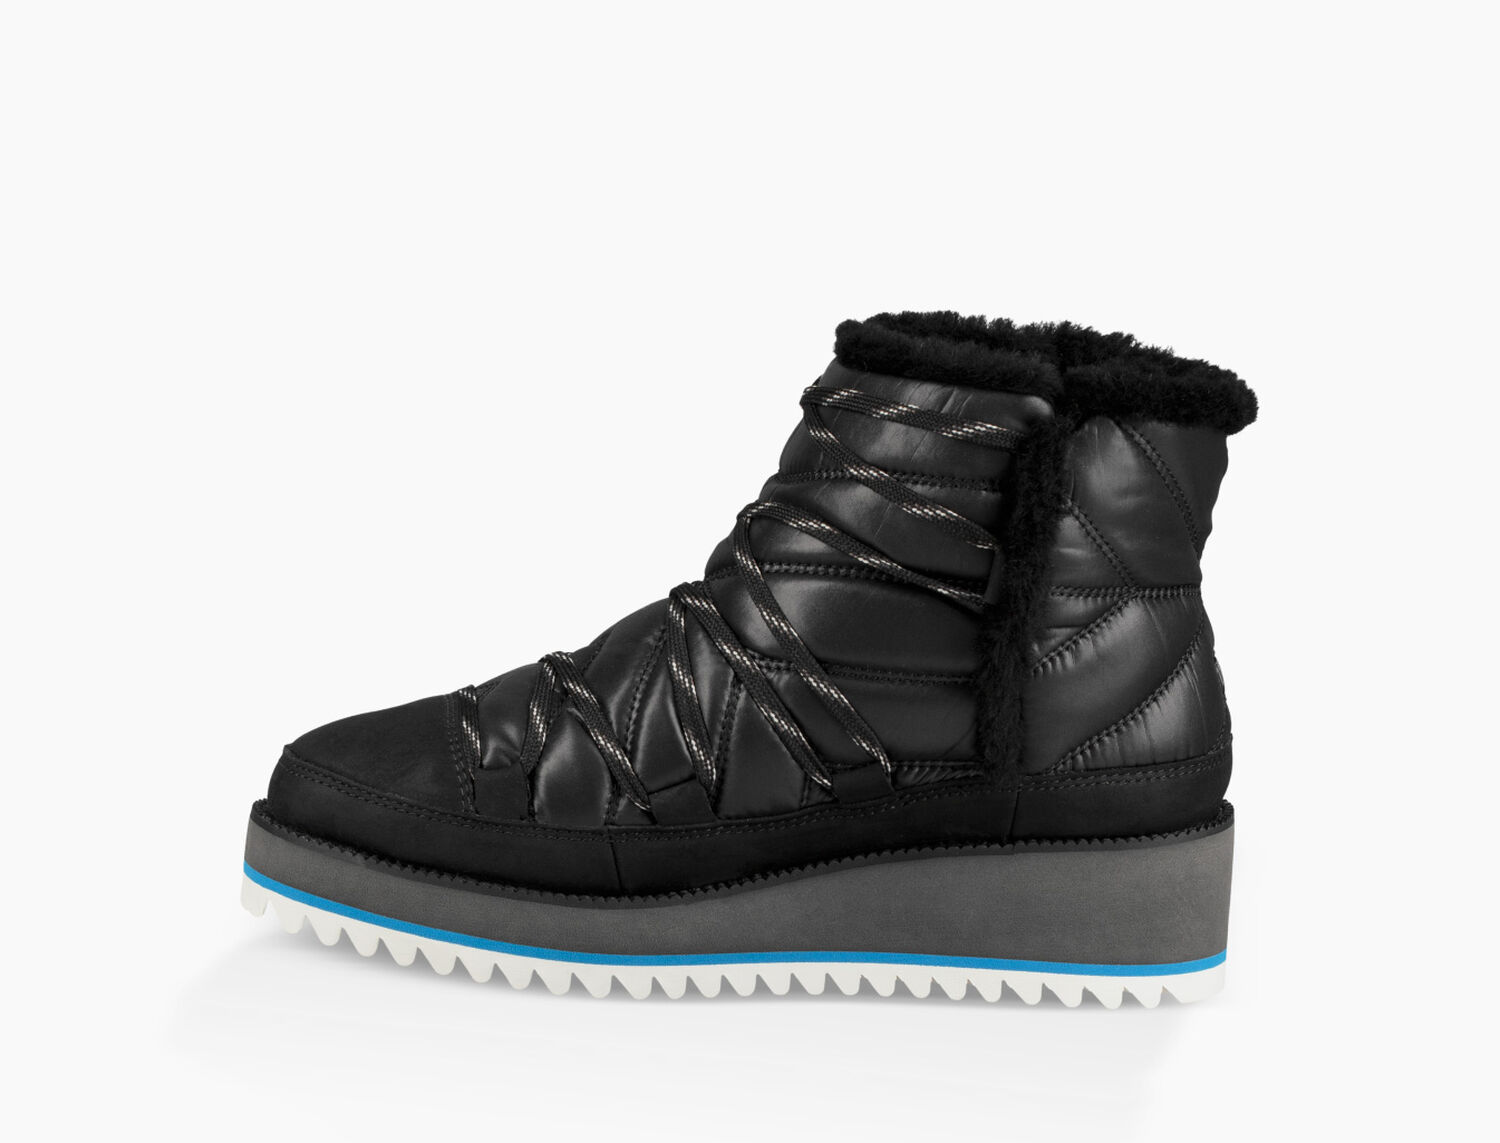 8ed4ee80941 Women's Share this product Cayden Boot